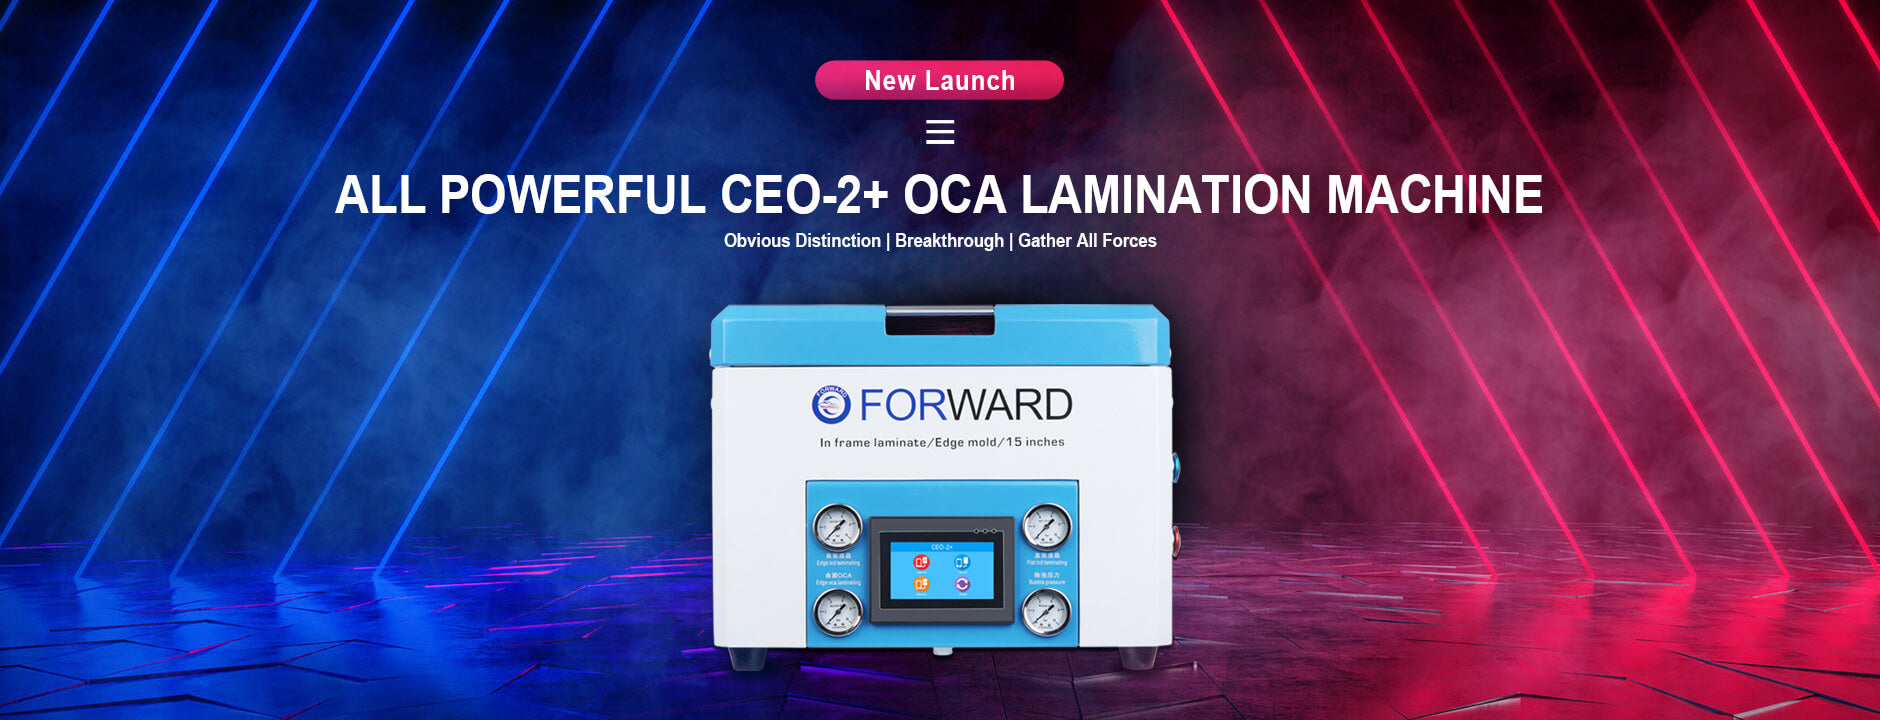 CEO-2+ All Powerful OCA Lamination Machine-web